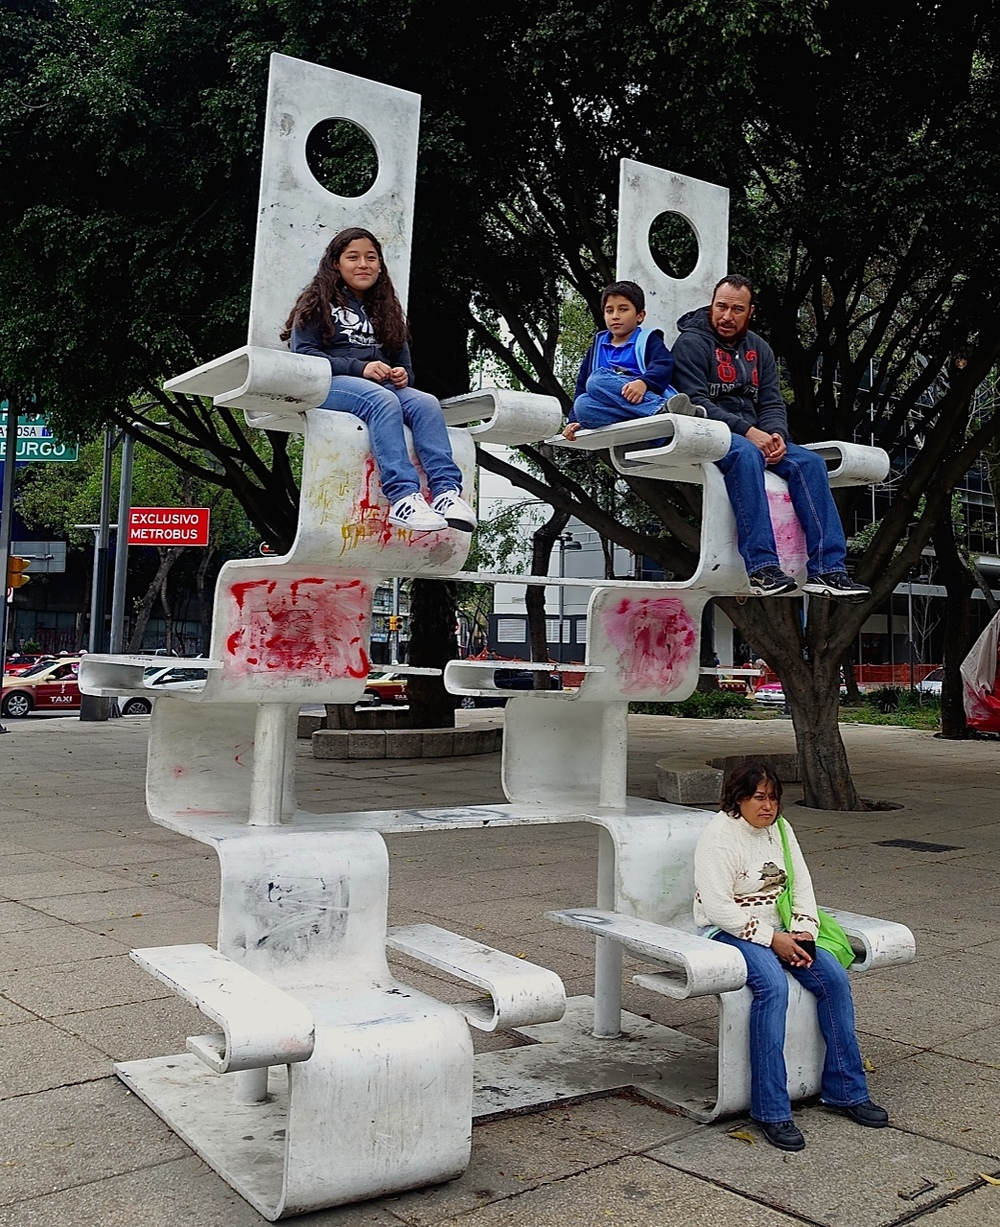 Mexico City is full of fun places to sit!